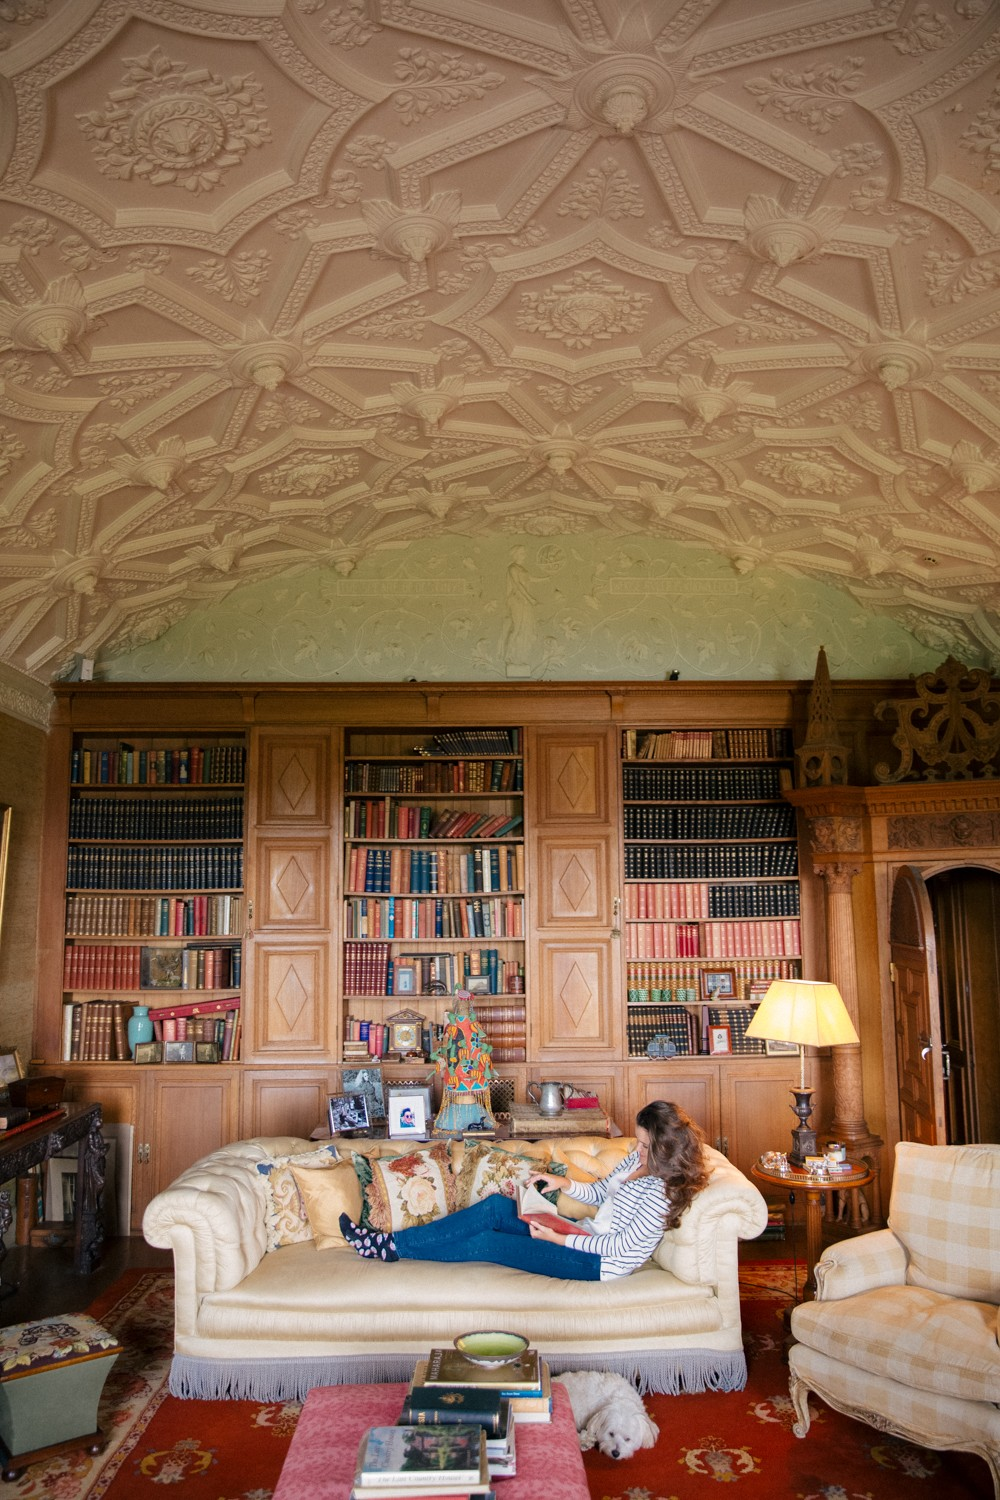 The library at Sennowe Park - perfect wedding location!